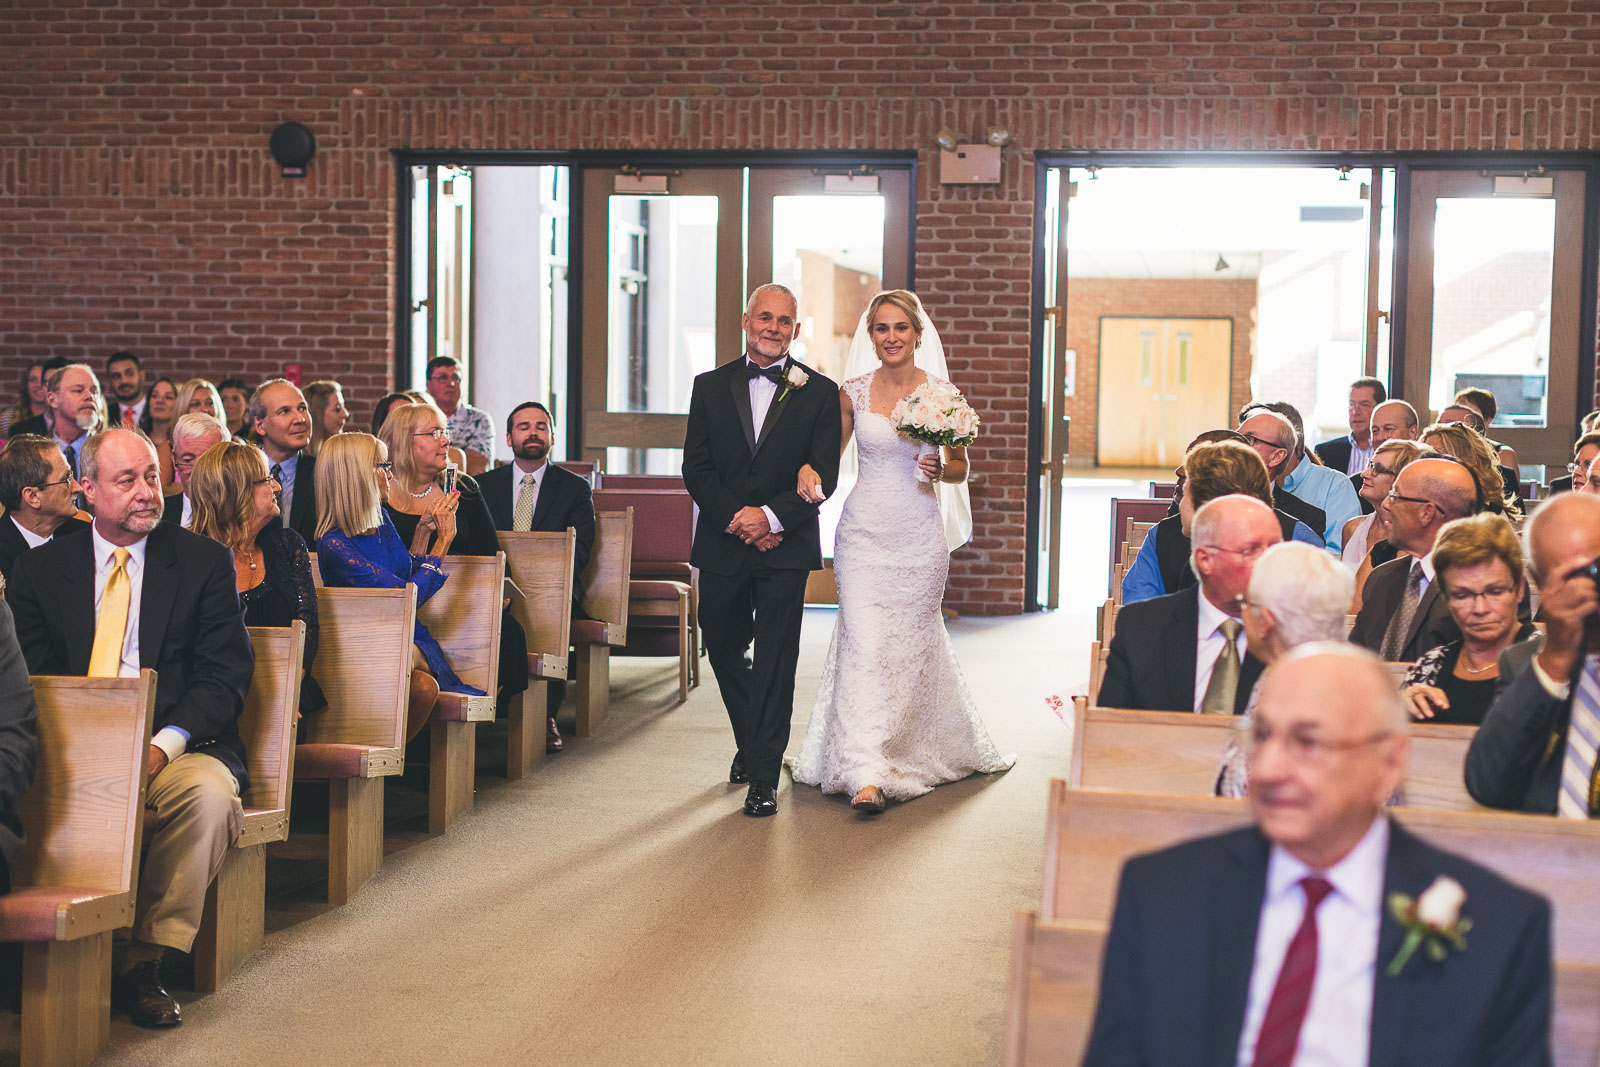 Father of Bride Walks down aisle